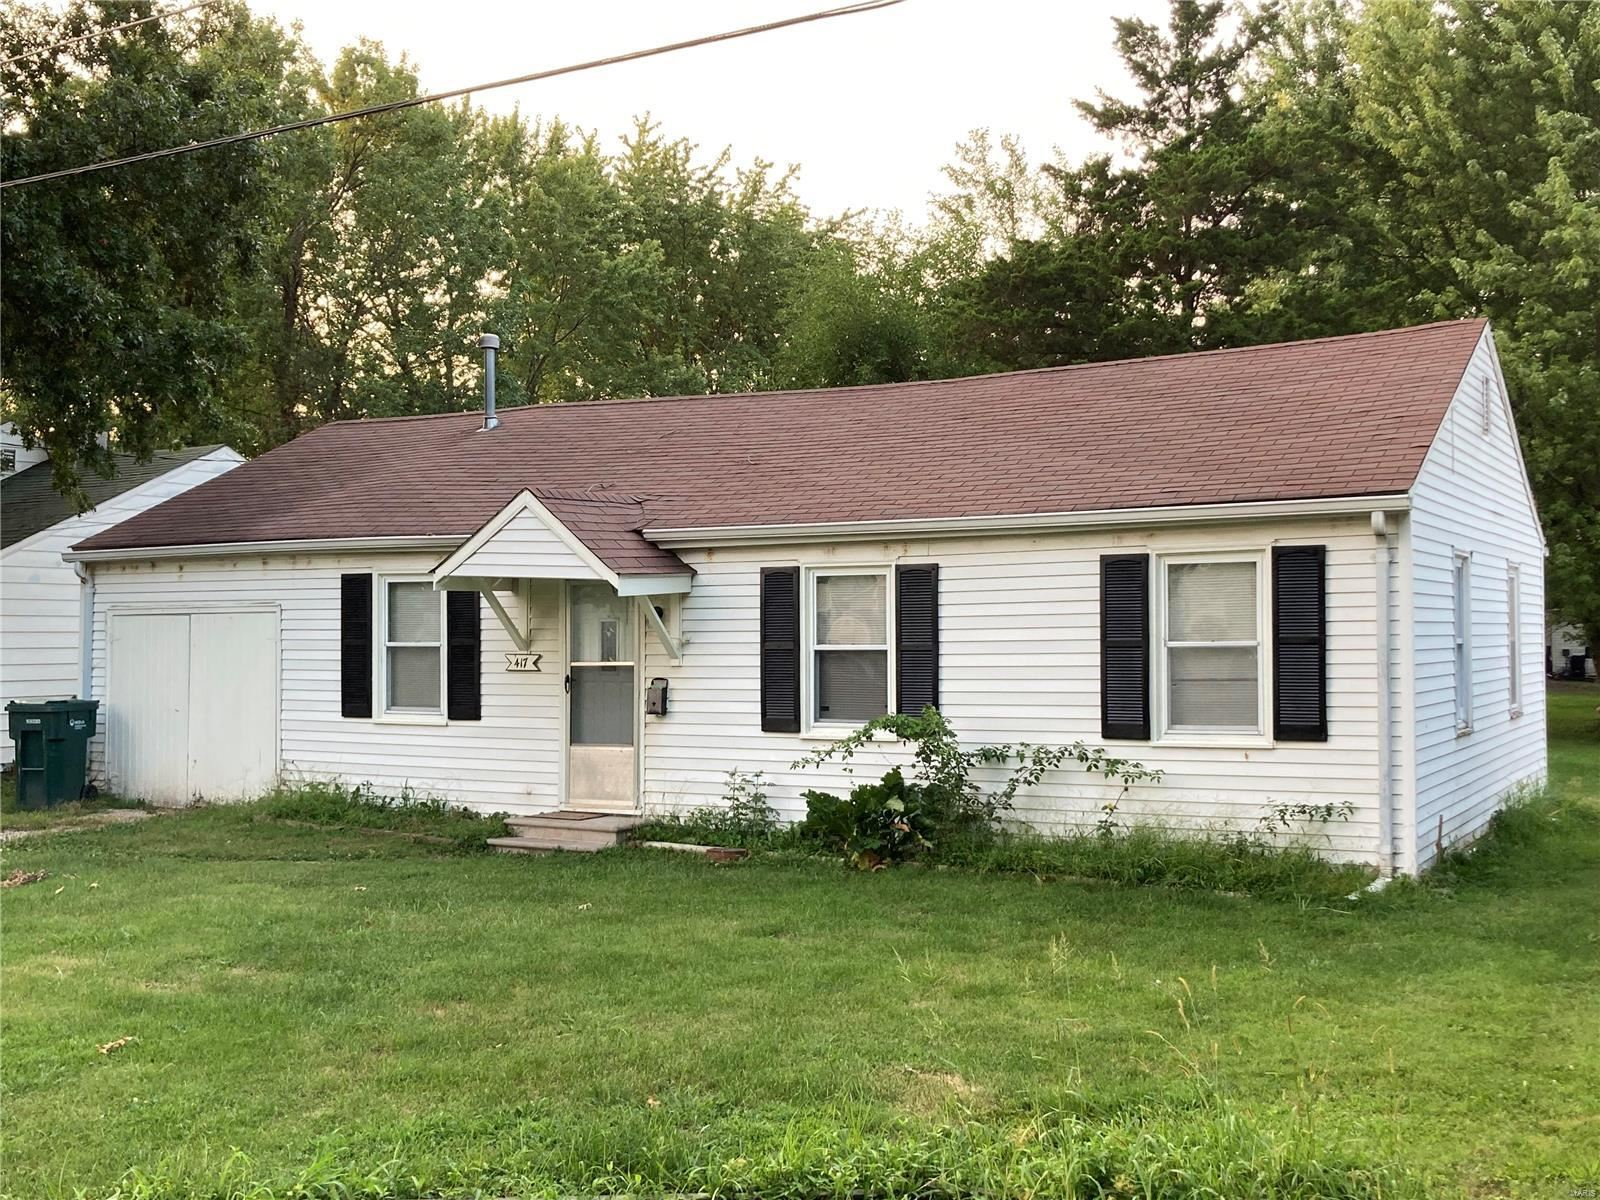 417 Lawrence, Montgomery City, MO 63361 - MLS#: 21060136